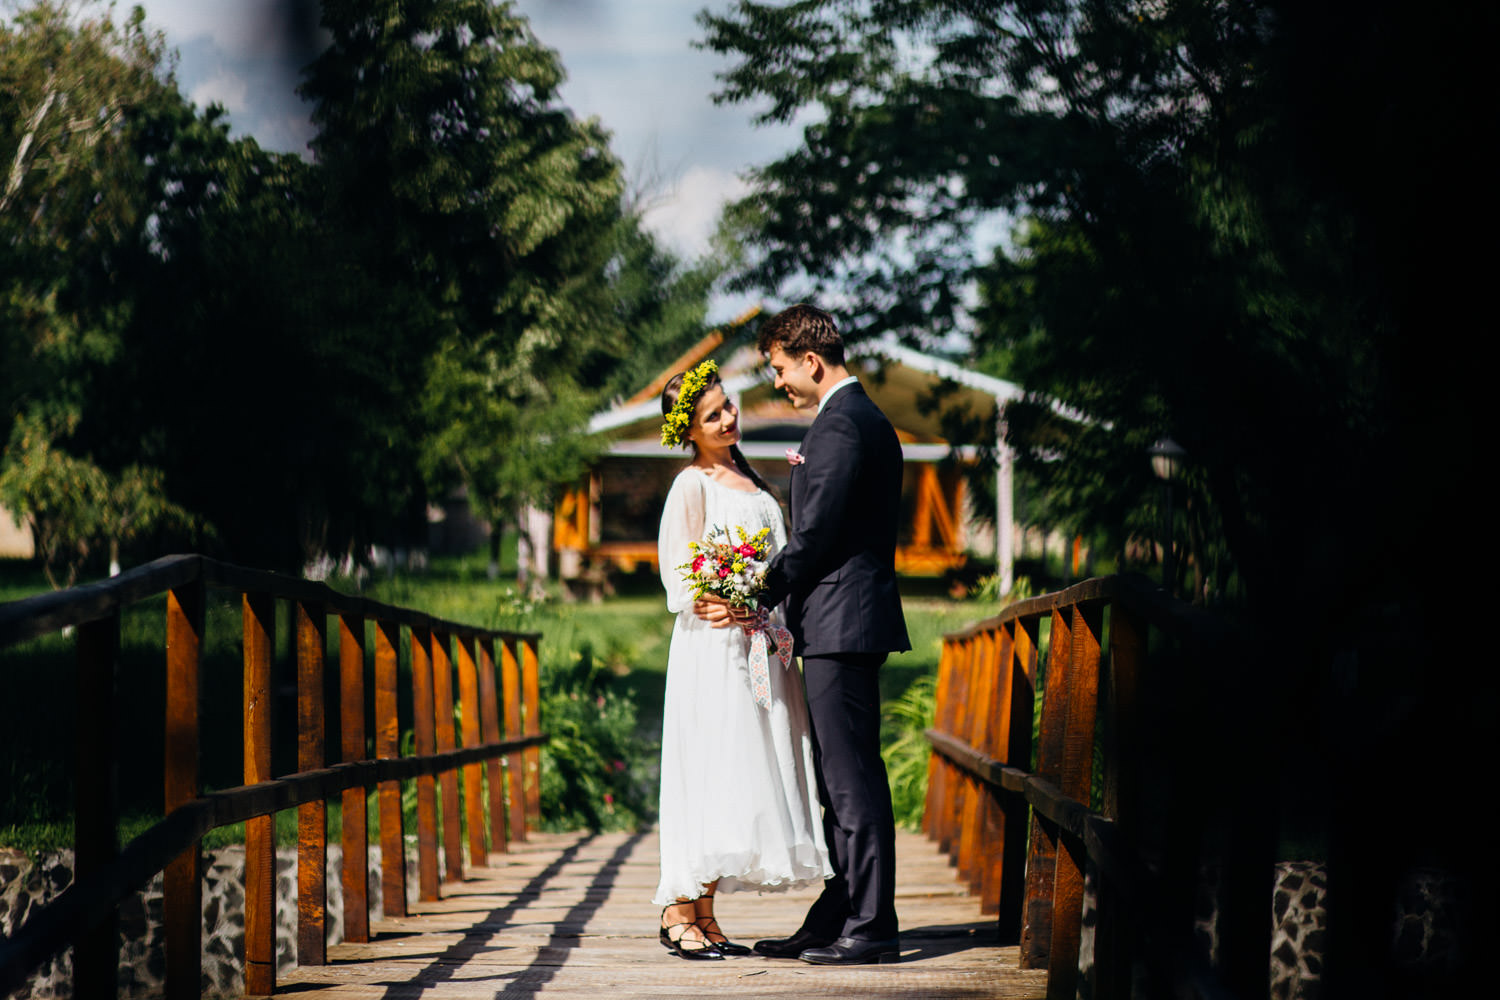 Bogdan & Luiza civil wedding Pitesti-1023